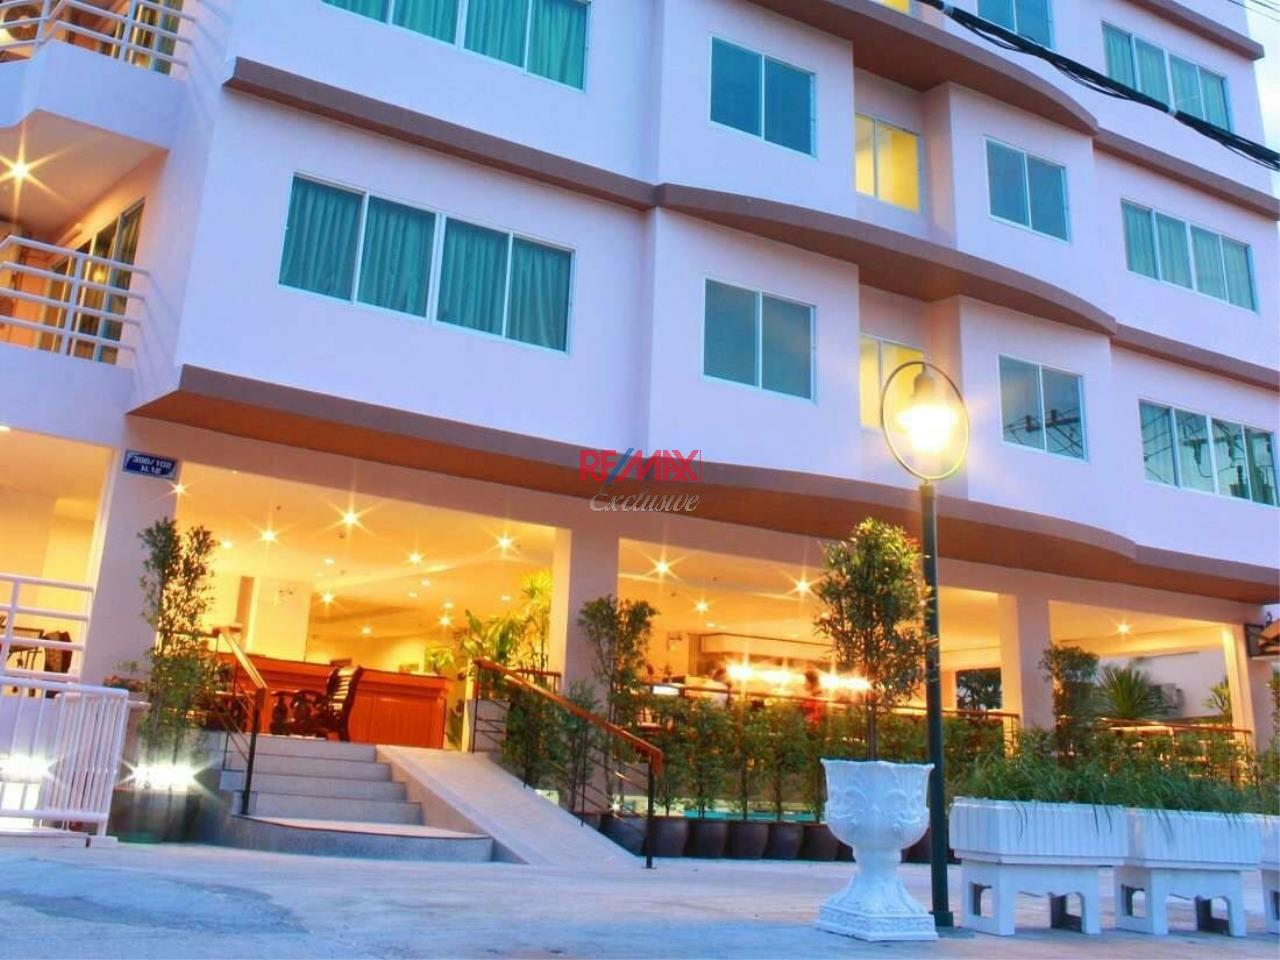 RE/MAX Exclusive Agency's Hotel with 80 Rooms for sale in Partumnak Pattaya Chonburi Great Price 130,000,000 1